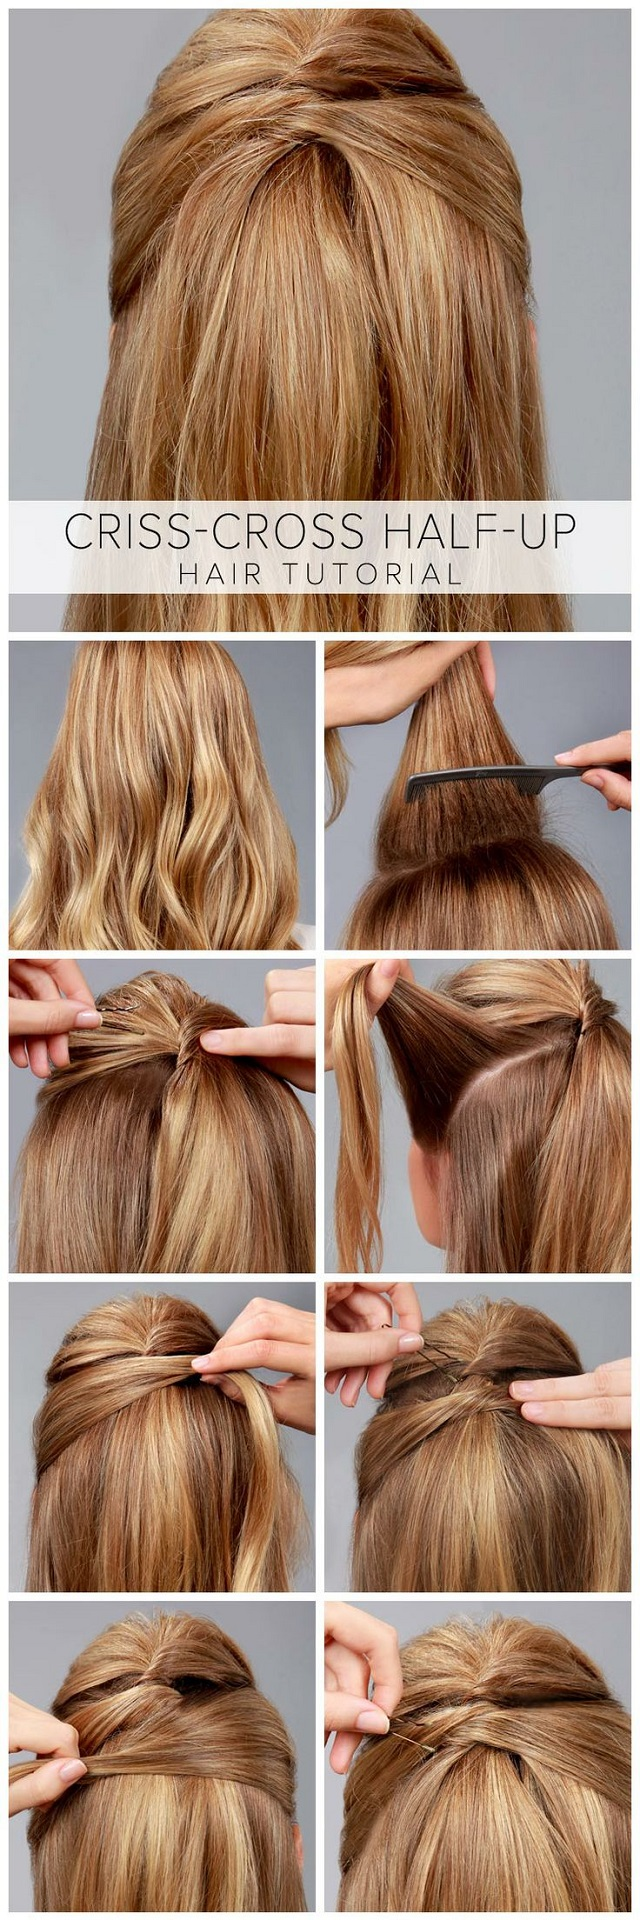 Criss Cross Hairstyle Tutorial